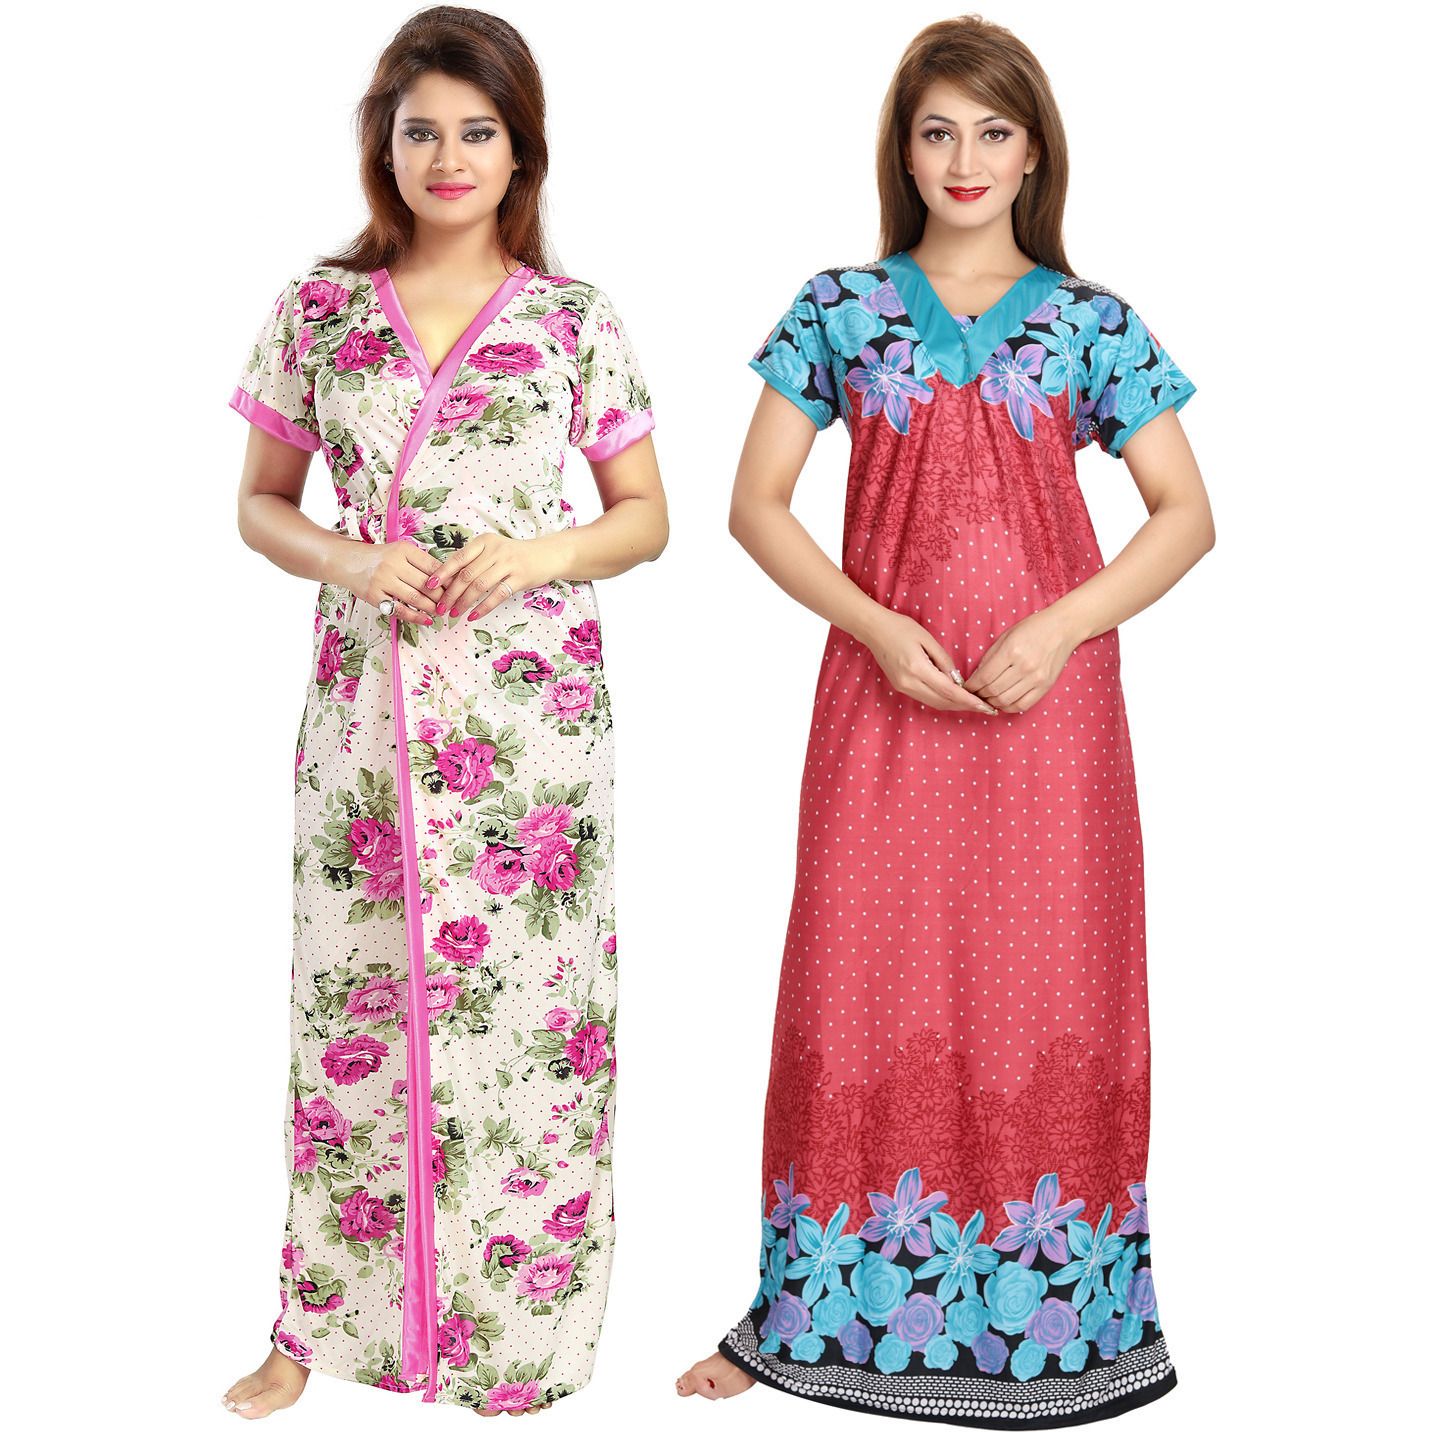 Buy Online Be You Serena Satin Red-Pink Women Nightgowns Combo Pack ... 66c038ca7d